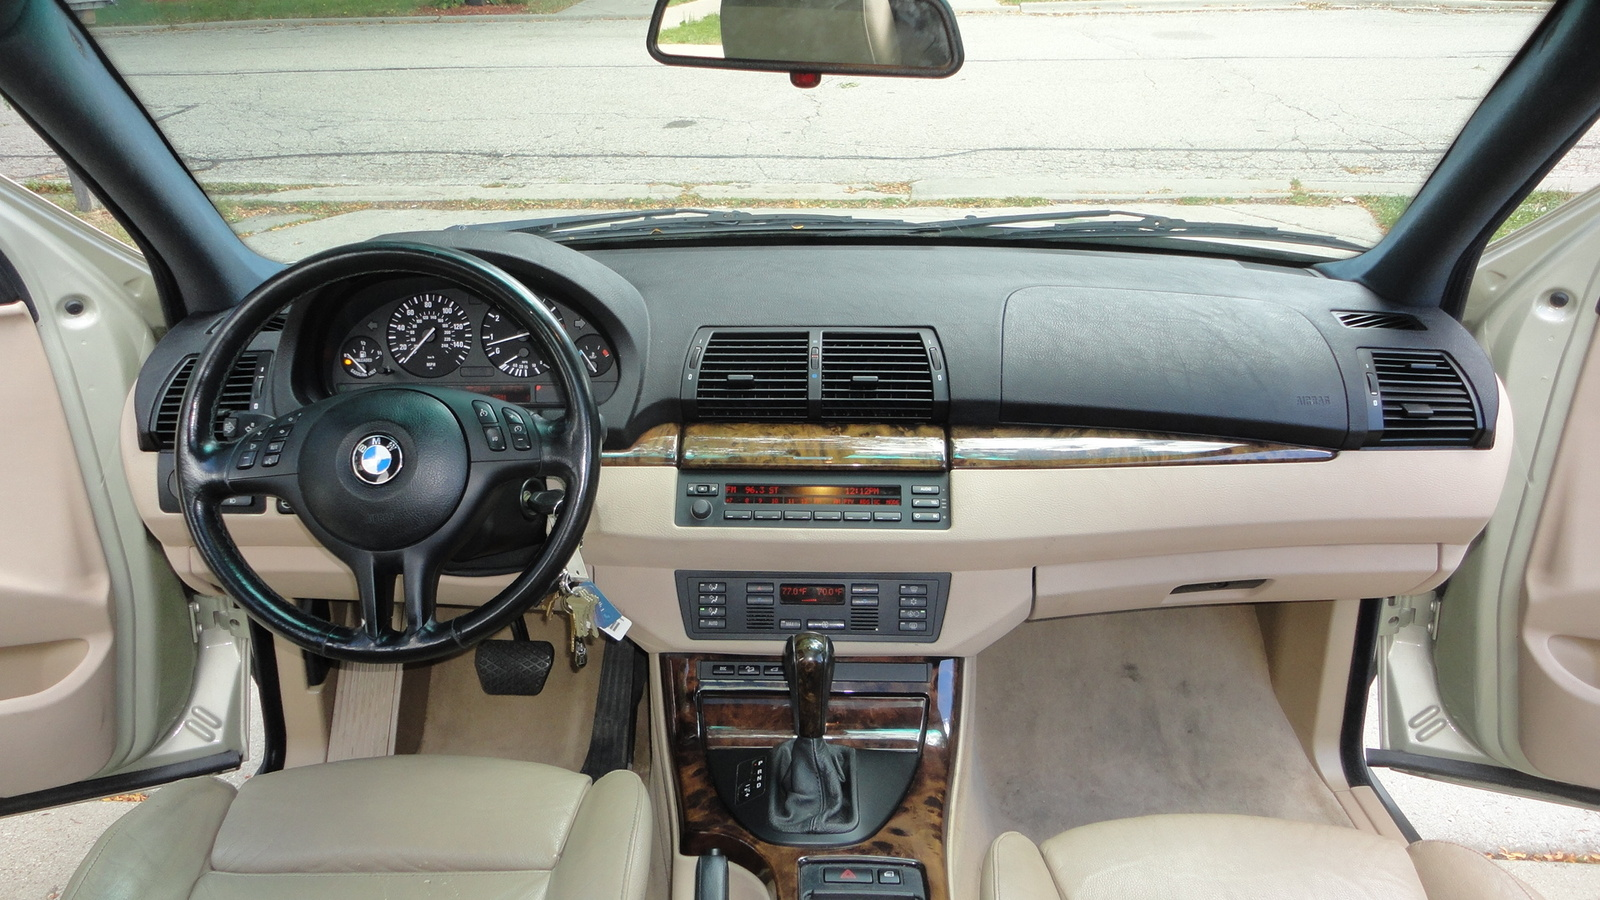 2002 Bmw X3 Interior Photos Upcomingcarshq Com